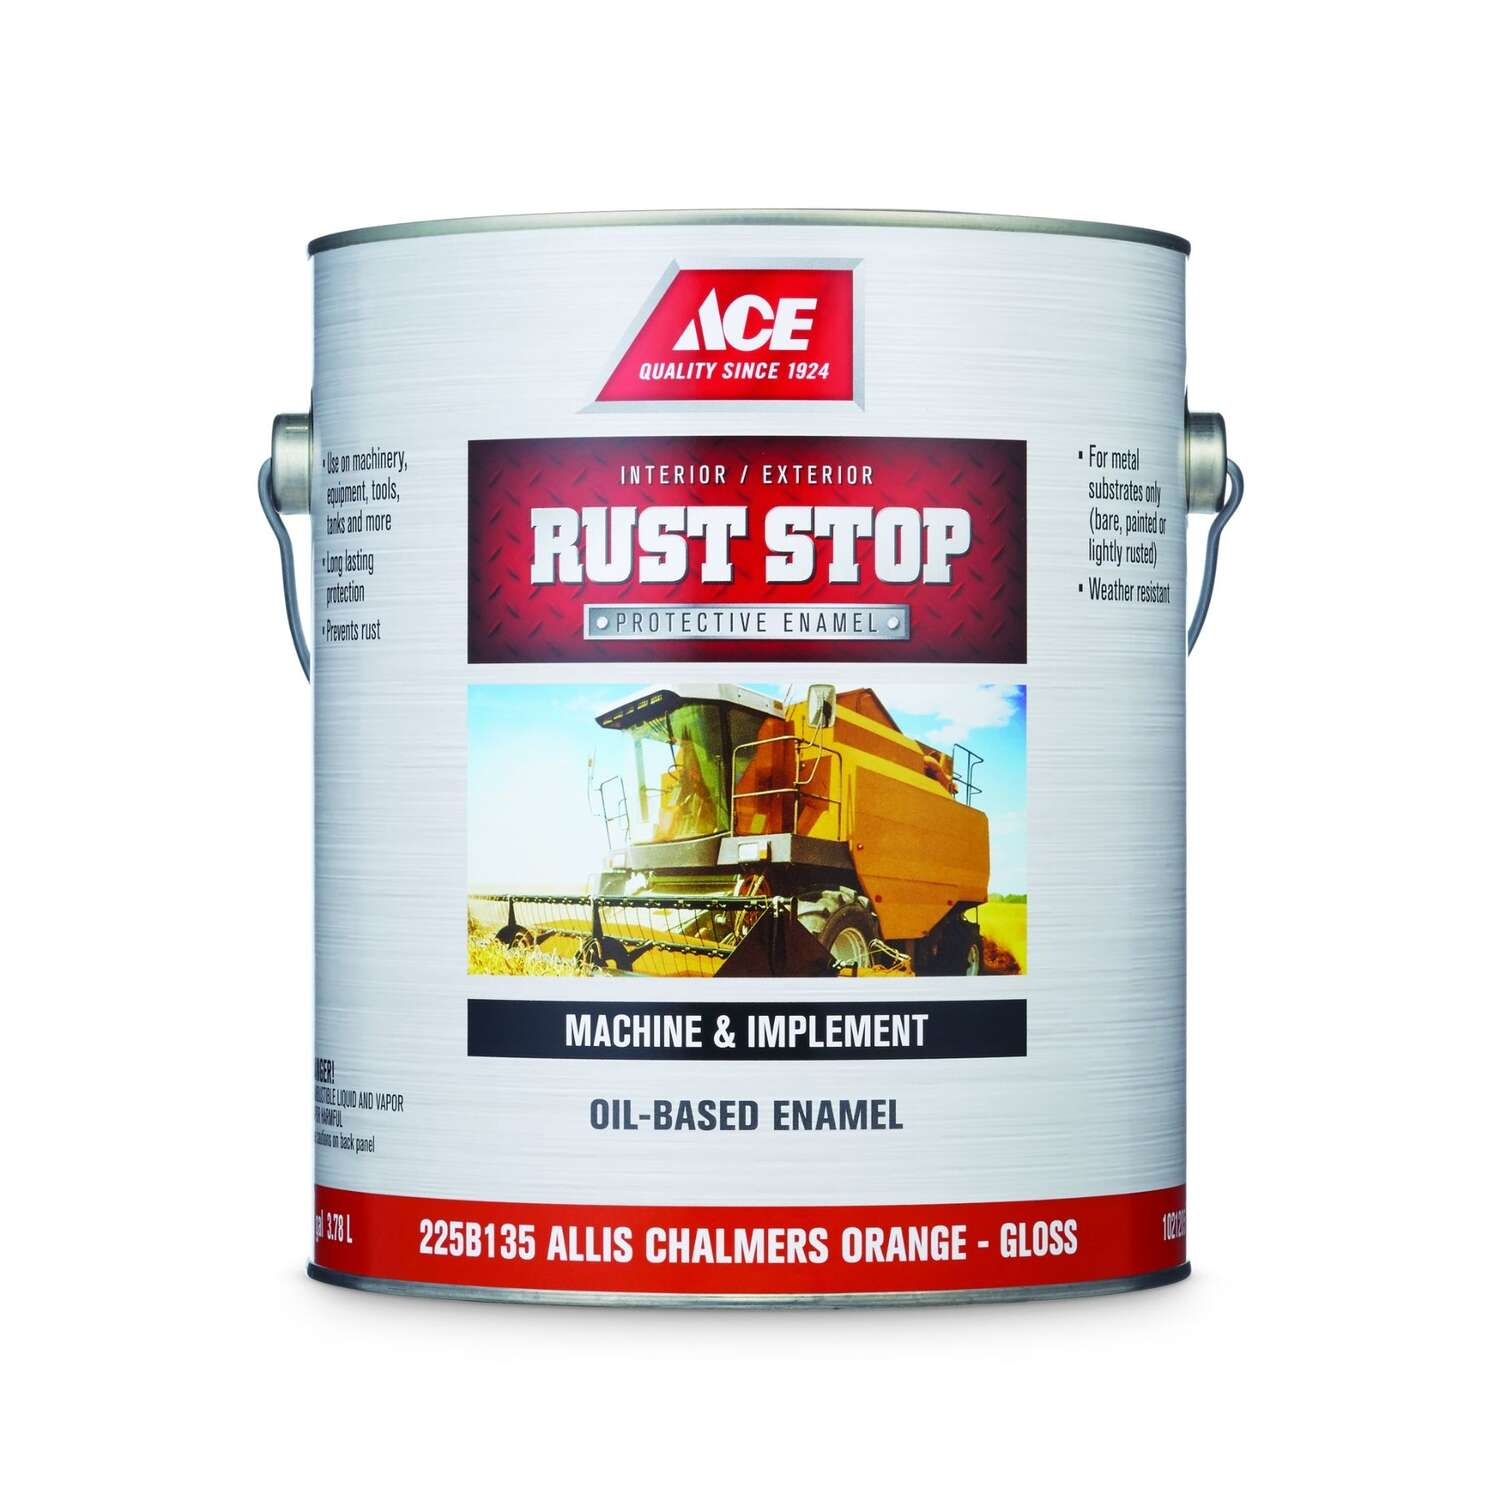 Ace  Rust Stop  Indoor/Outdoor  Gloss  Allis Chalmers Orange  Oil-Based Enamel  Rust Preventative Pa